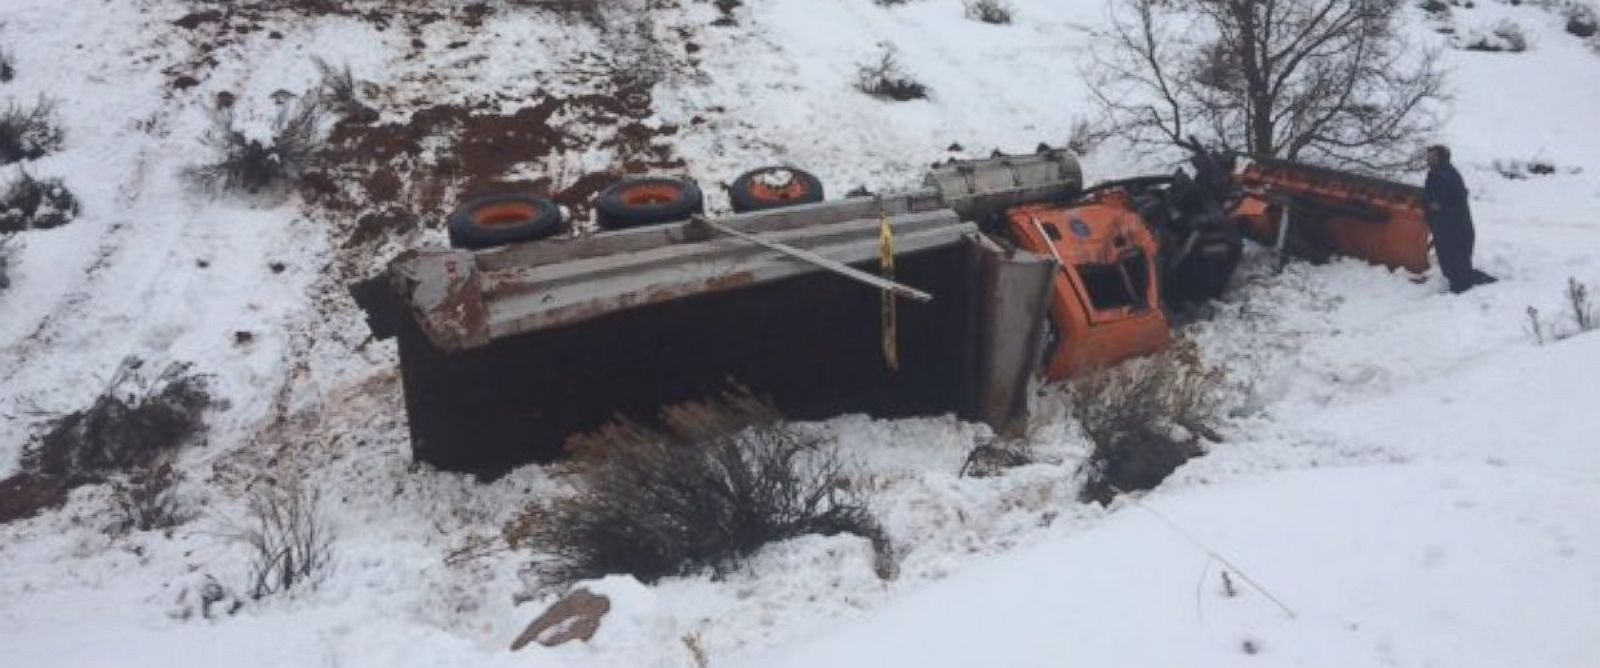 PHOTO: A snow plow driver suffered serious injuries after he was run off the road by a semi-truck, according to the Utah Department of Transportation.